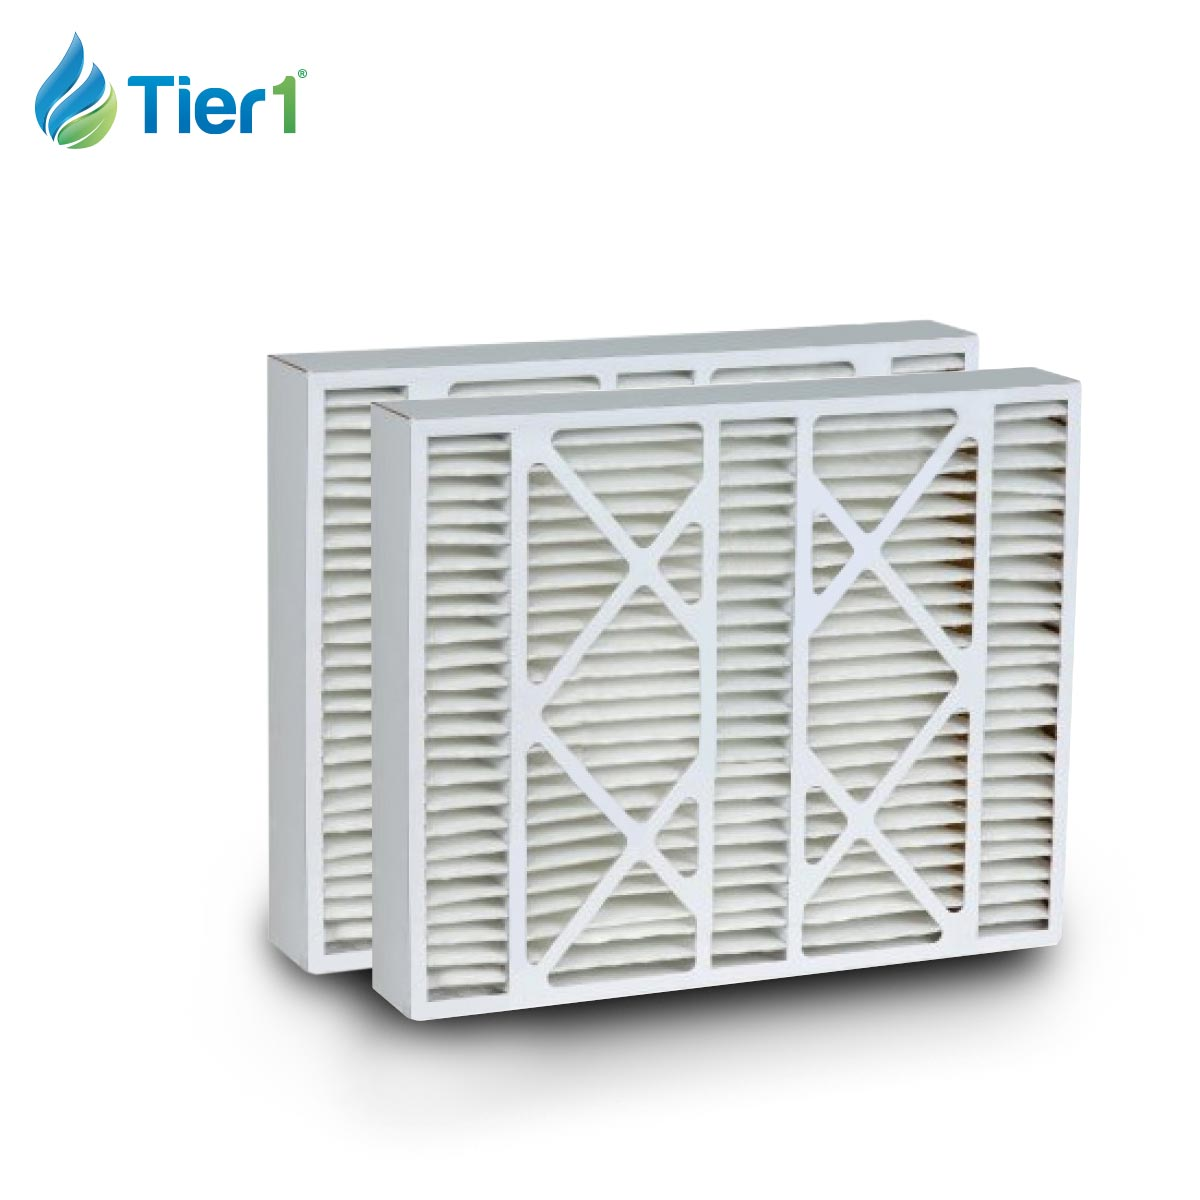 Tier1 brand replacement for White-Rodgers FR2000U-108 & FR2000U-110 - 20 x 25 x 5 - MERV 13 (2-Pack) TIER1-DPFI20X25X5M13